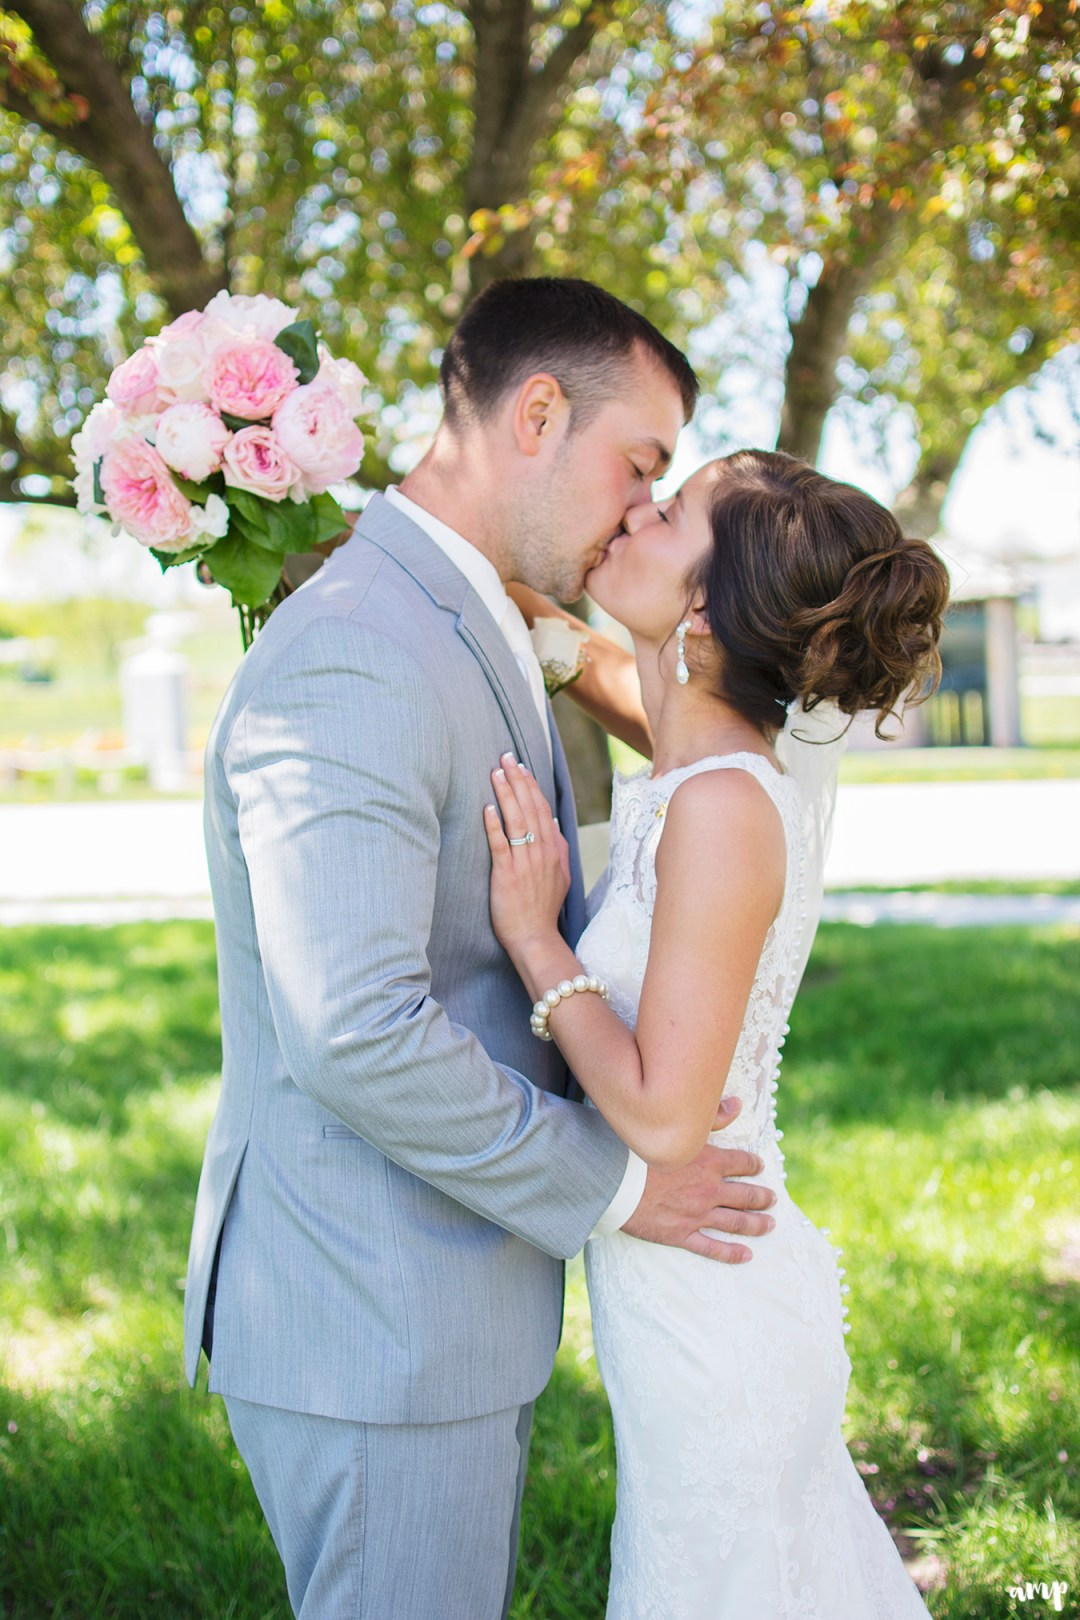 Bride and groom kissing in the shade of a tree